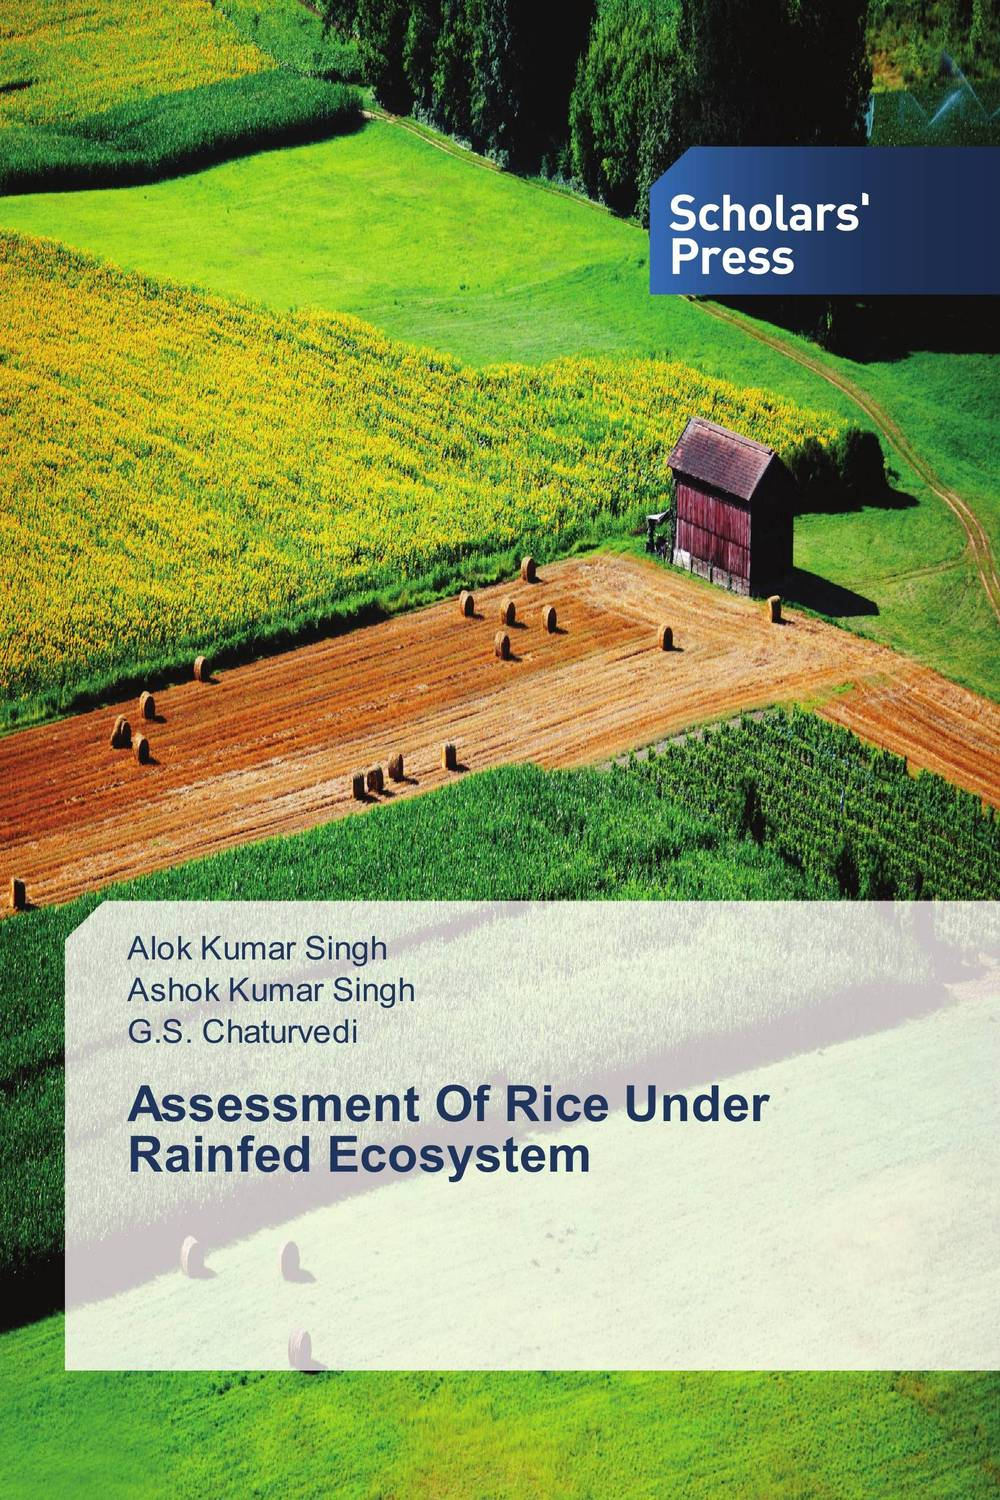 Assessment Of Rice Under Rainfed Ecosystem